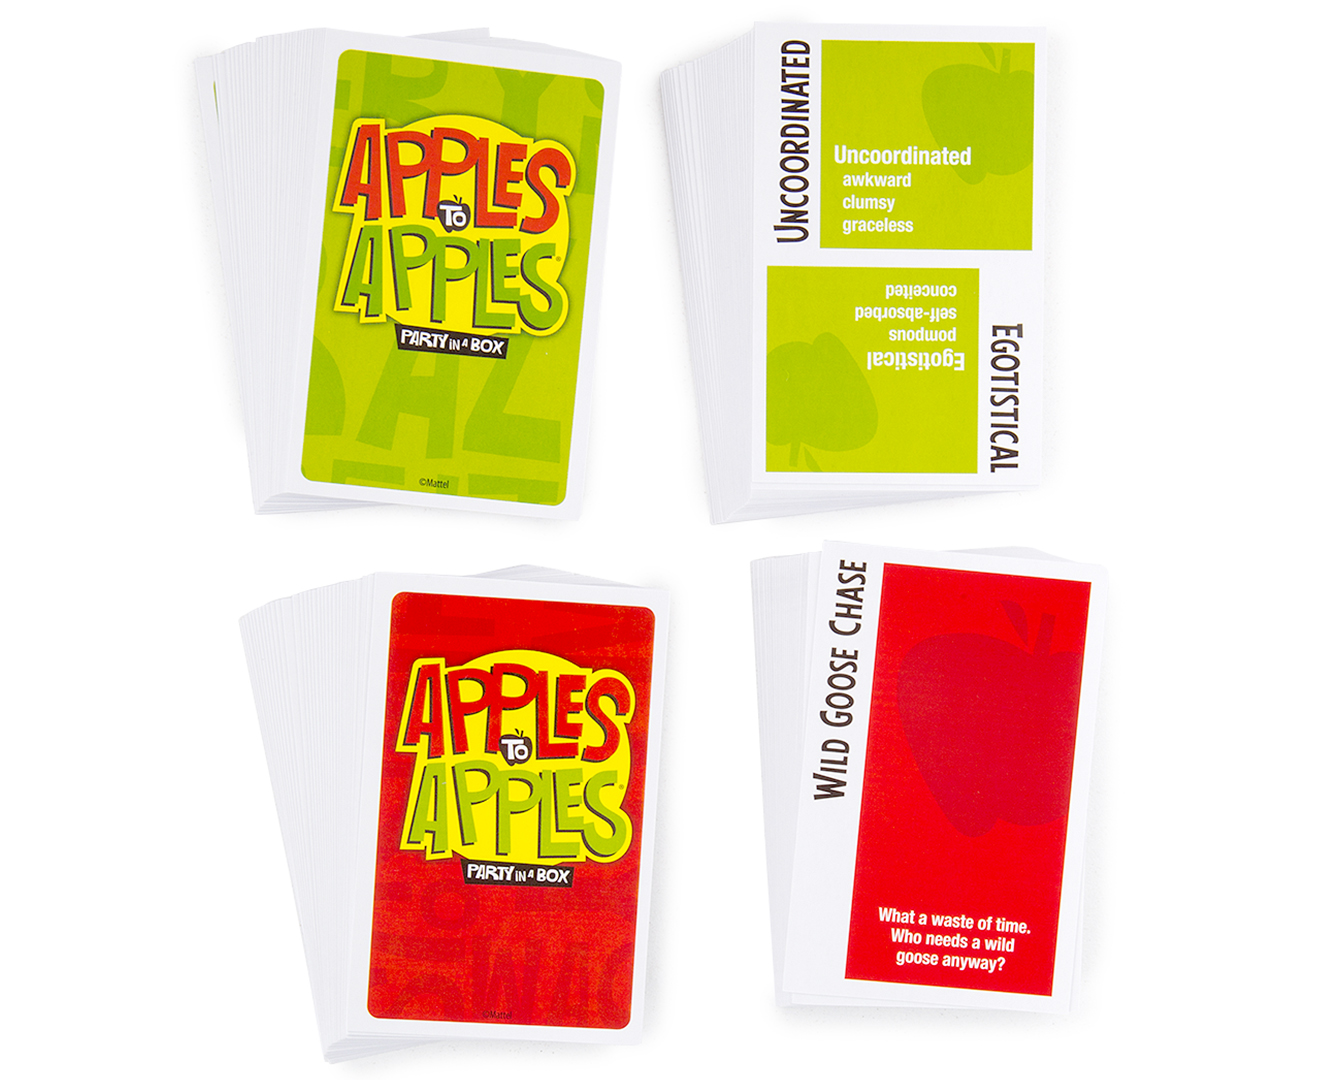 Mattel Apples To Apples Party In A Box Game | CatchOfTheDay.co.nz